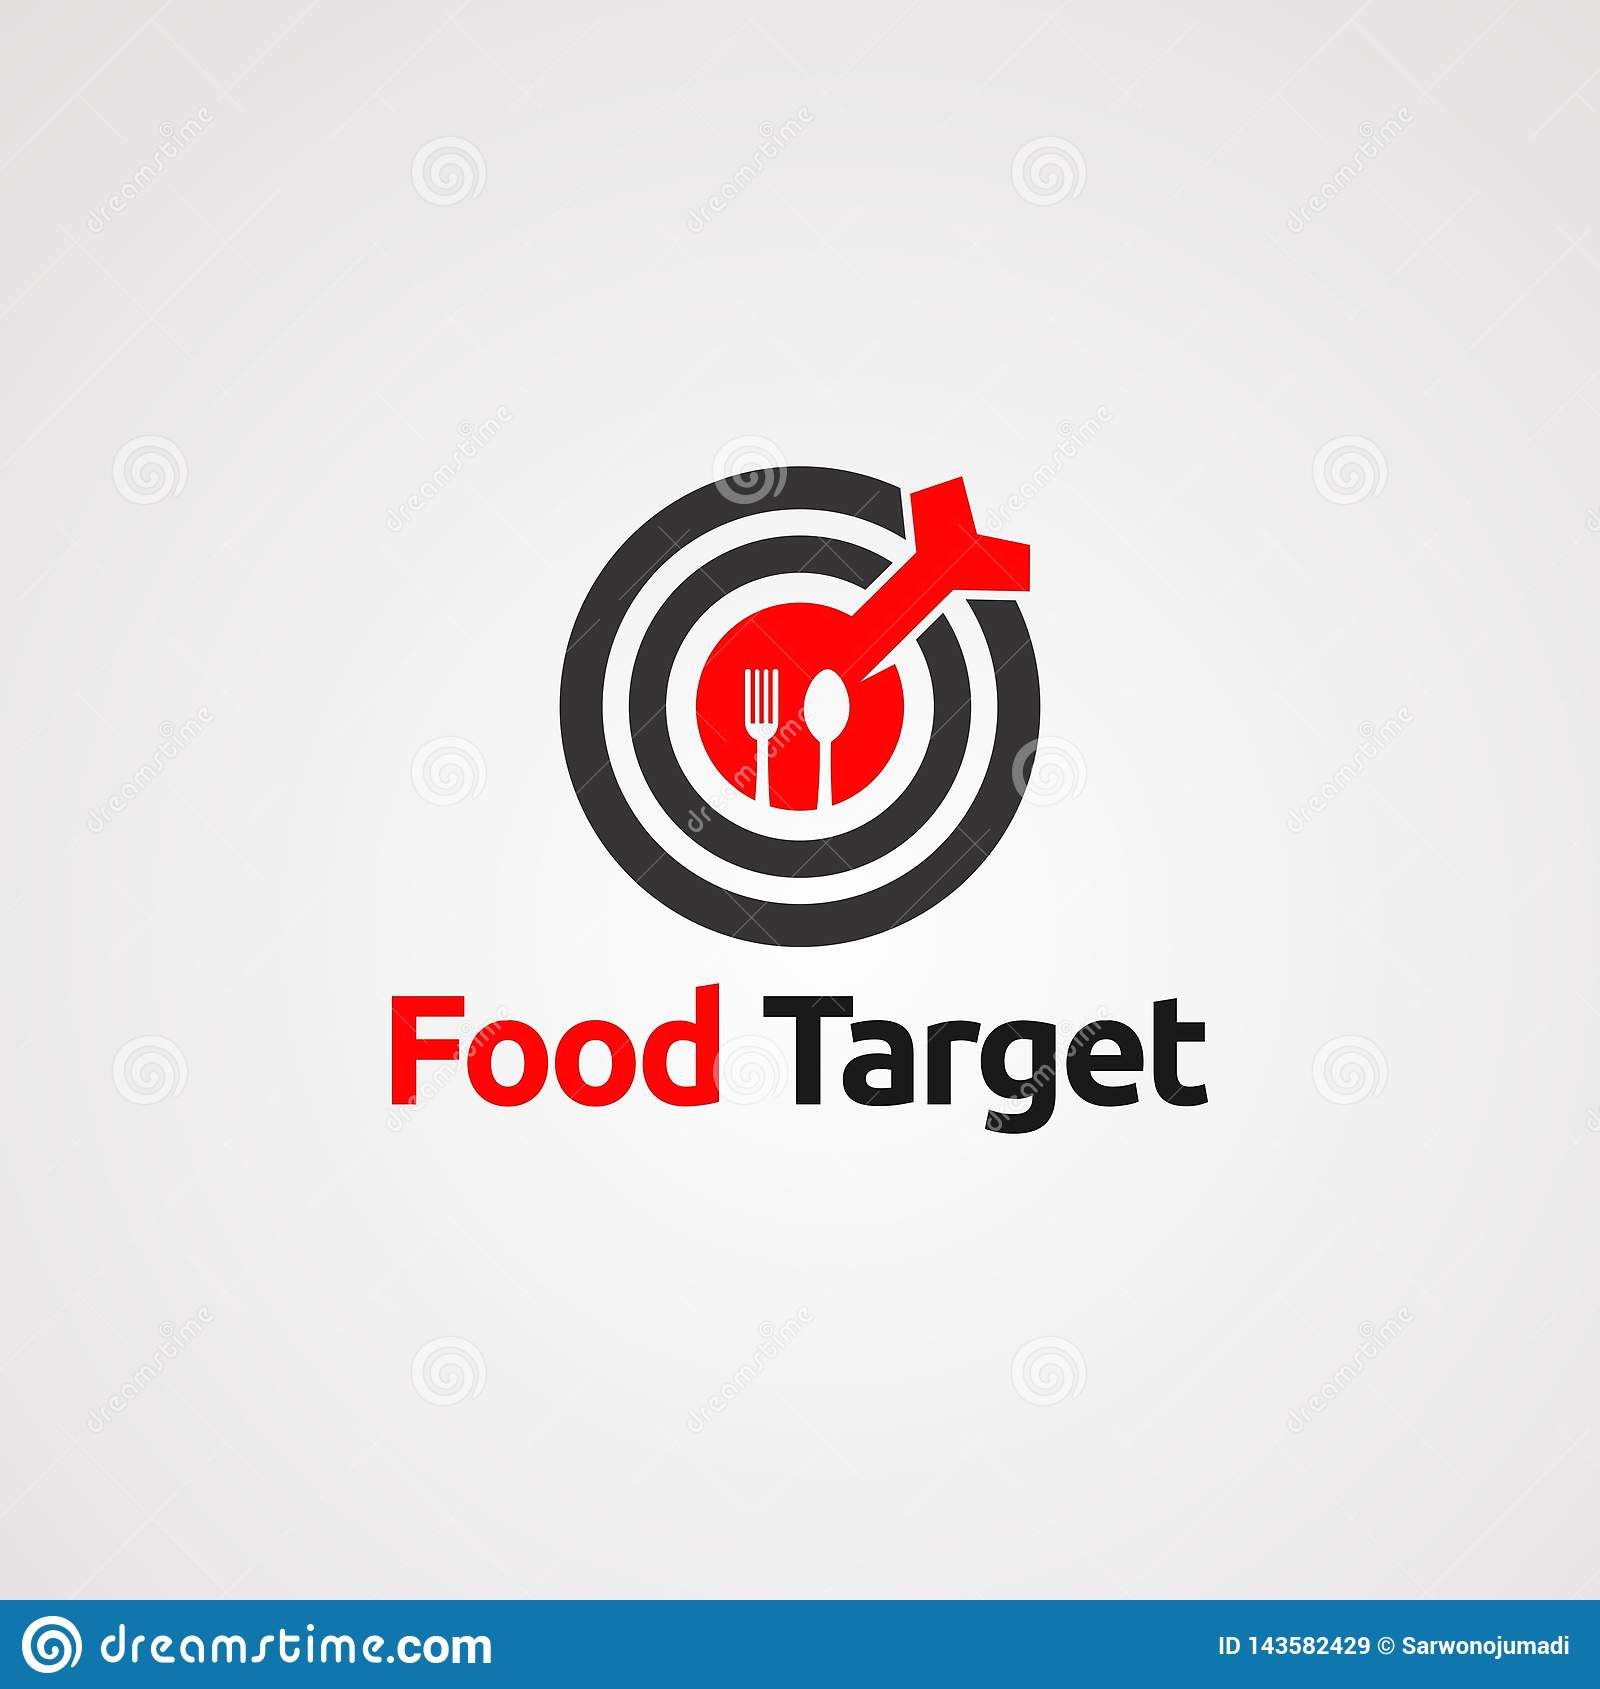 Food target with red arrow on center logo vector, icon, element, and template for company